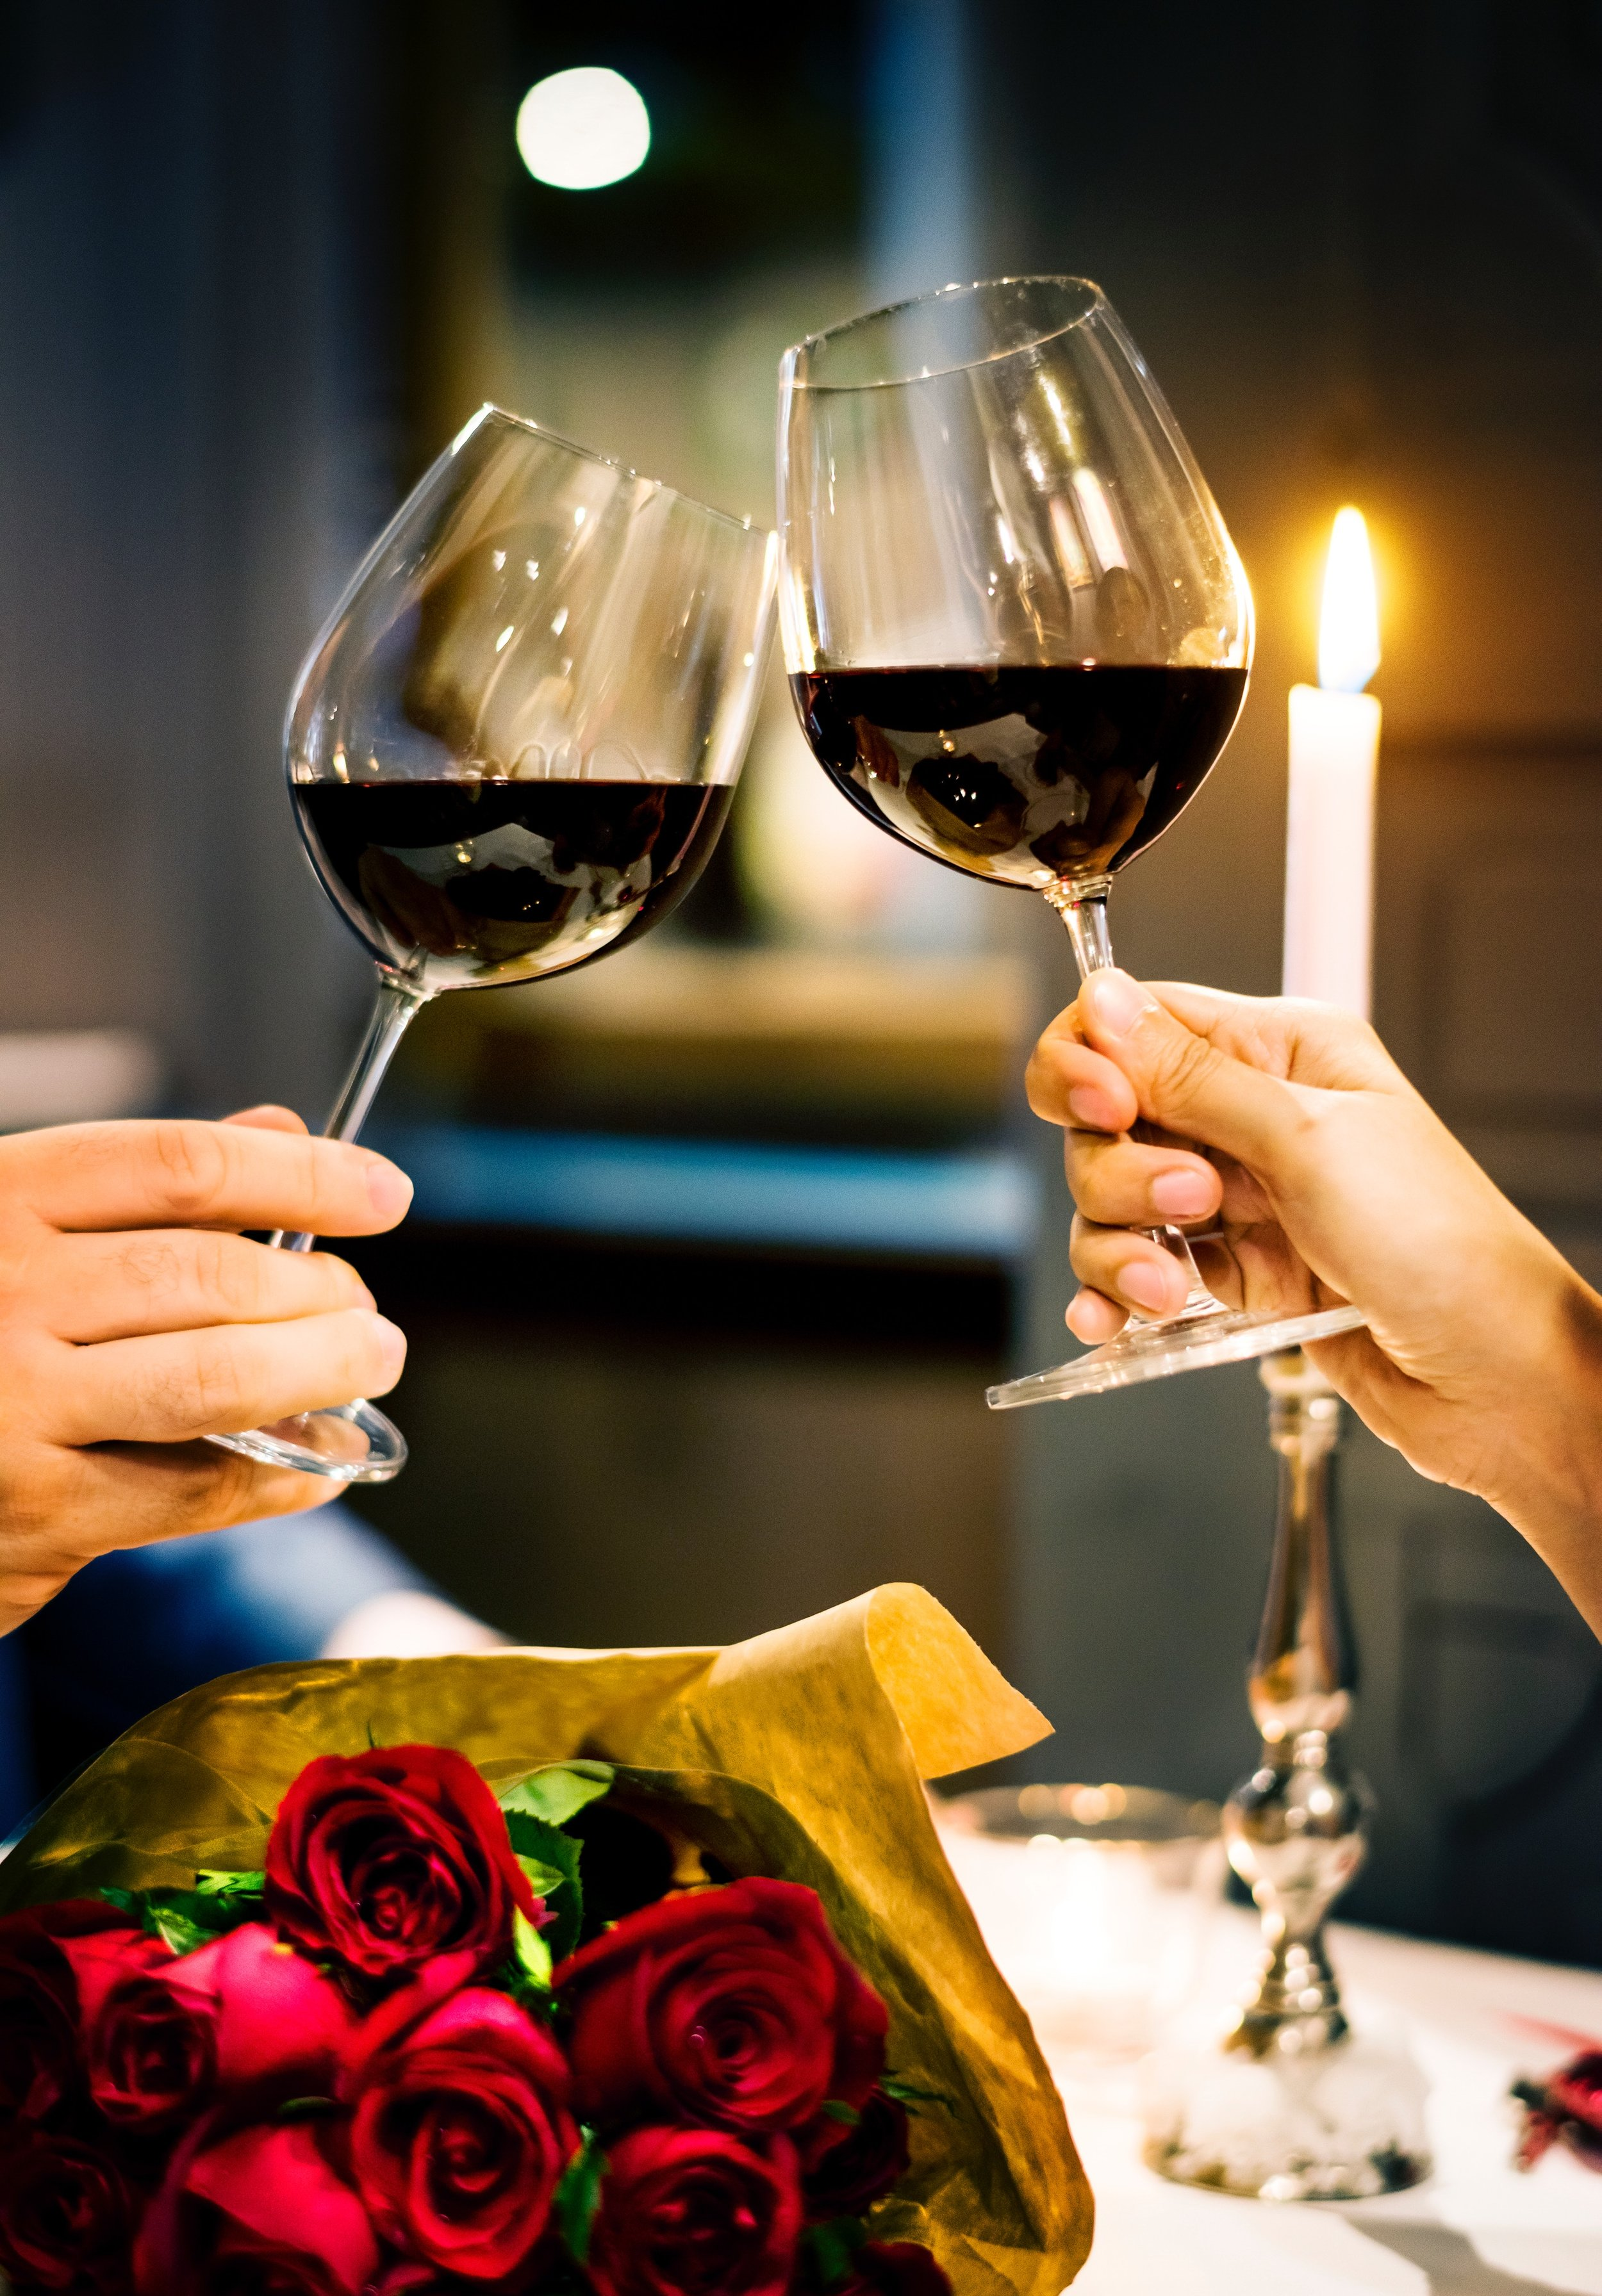 Wine glasses and bouquet of roses by rawpixel